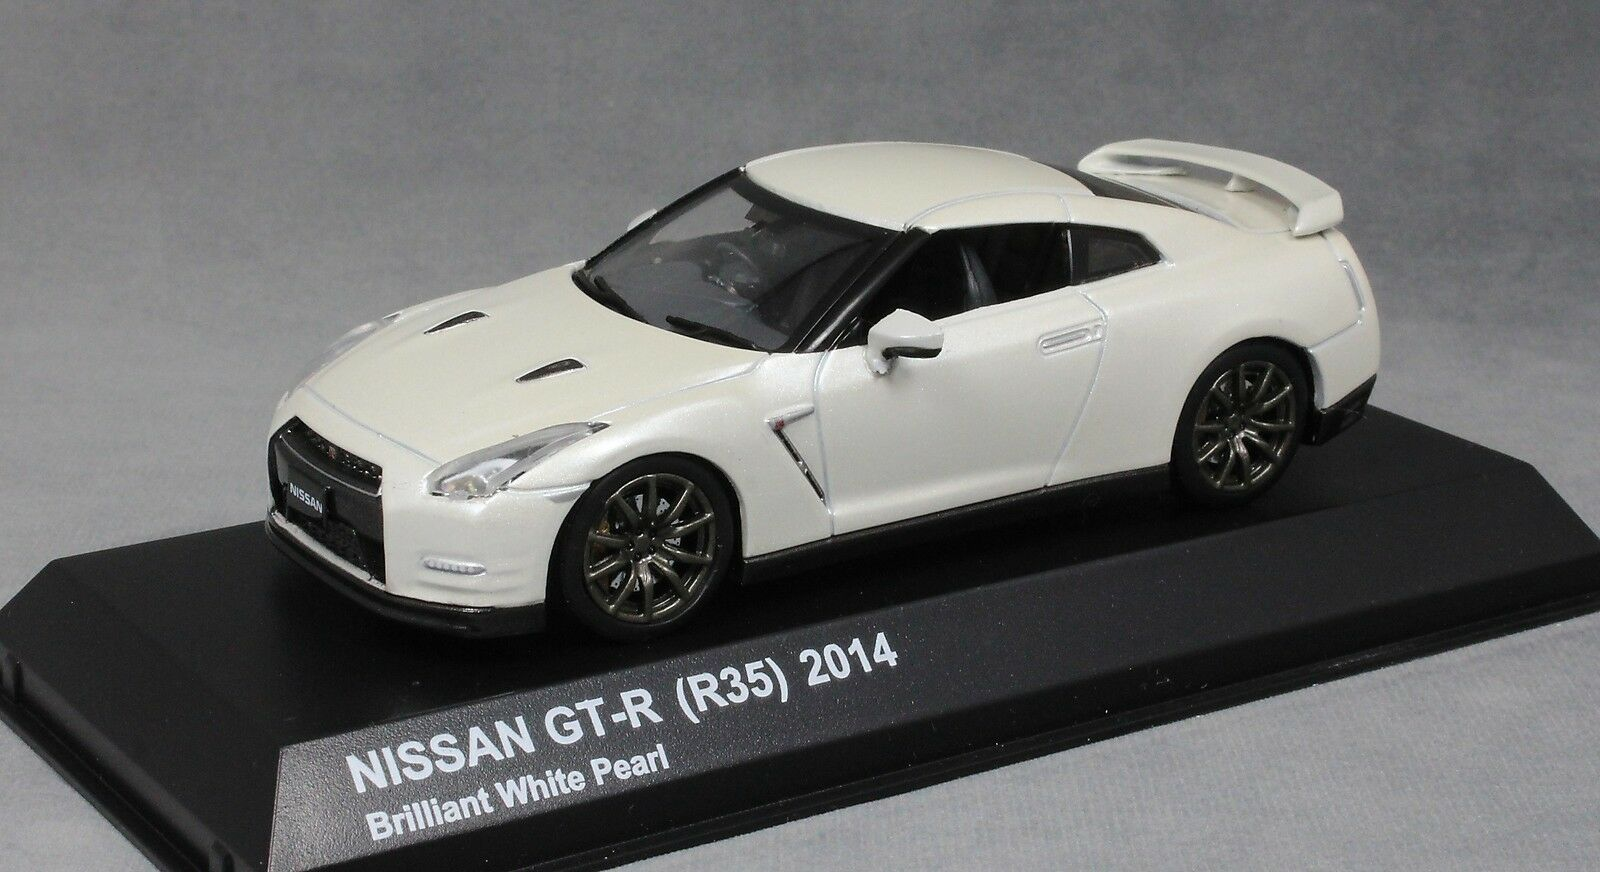 Kyosho Nissan GT-R R35 in Brilliant White Pearl 2014 03744BW 1 43 NEW